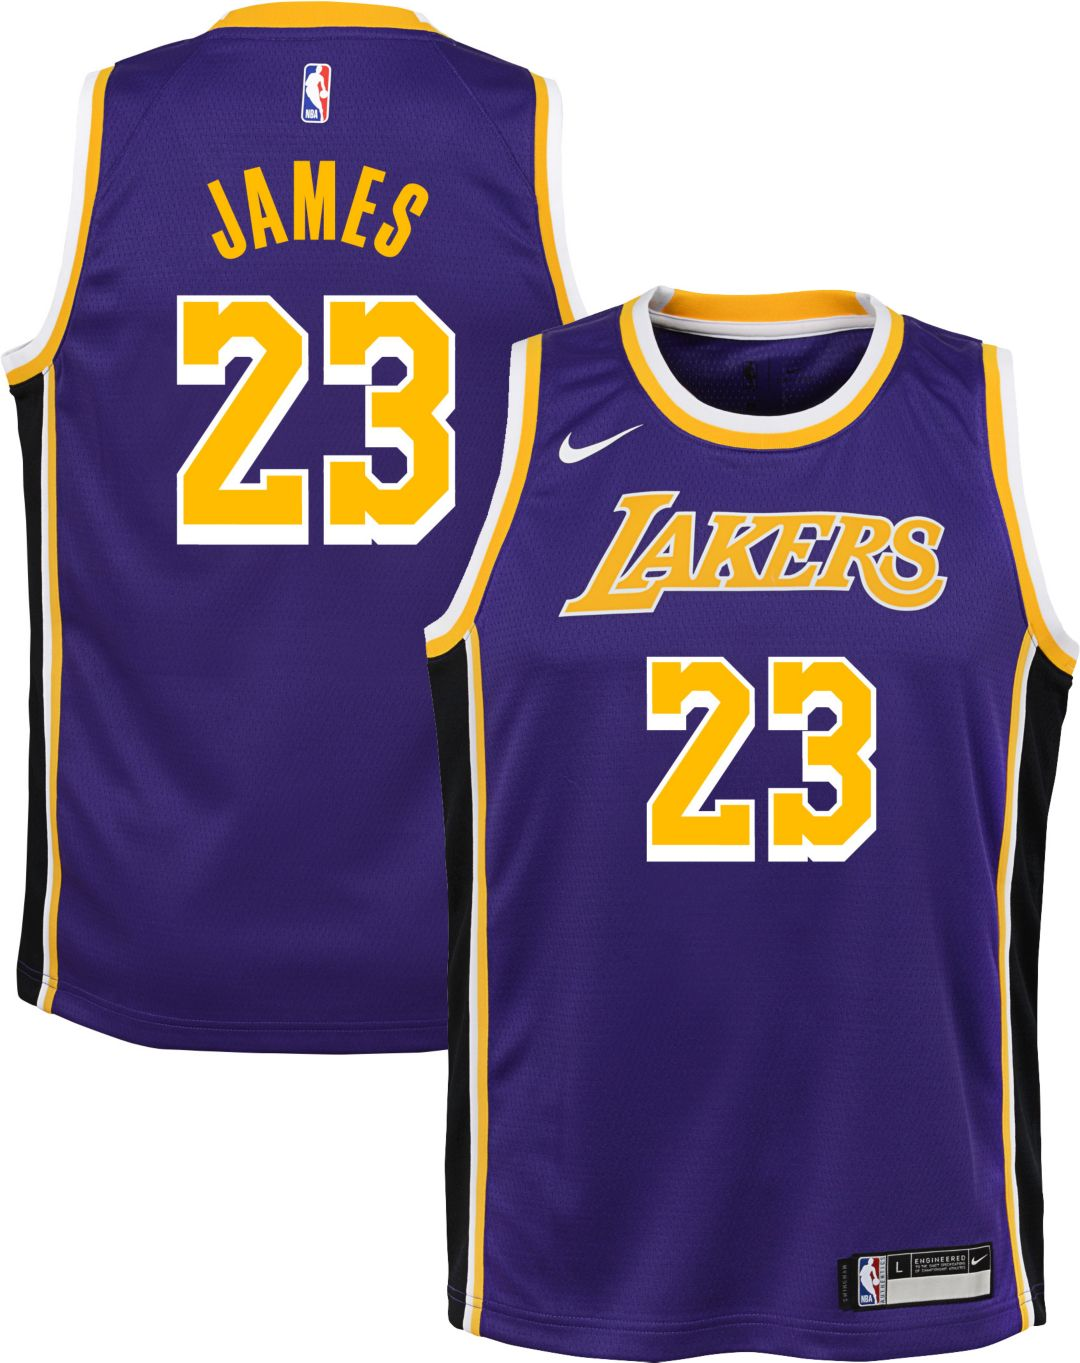 more photos 890cf 87ad1 Nike Youth Los Angeles Lakers LeBron James Dri-FIT Purple Swingman Jersey